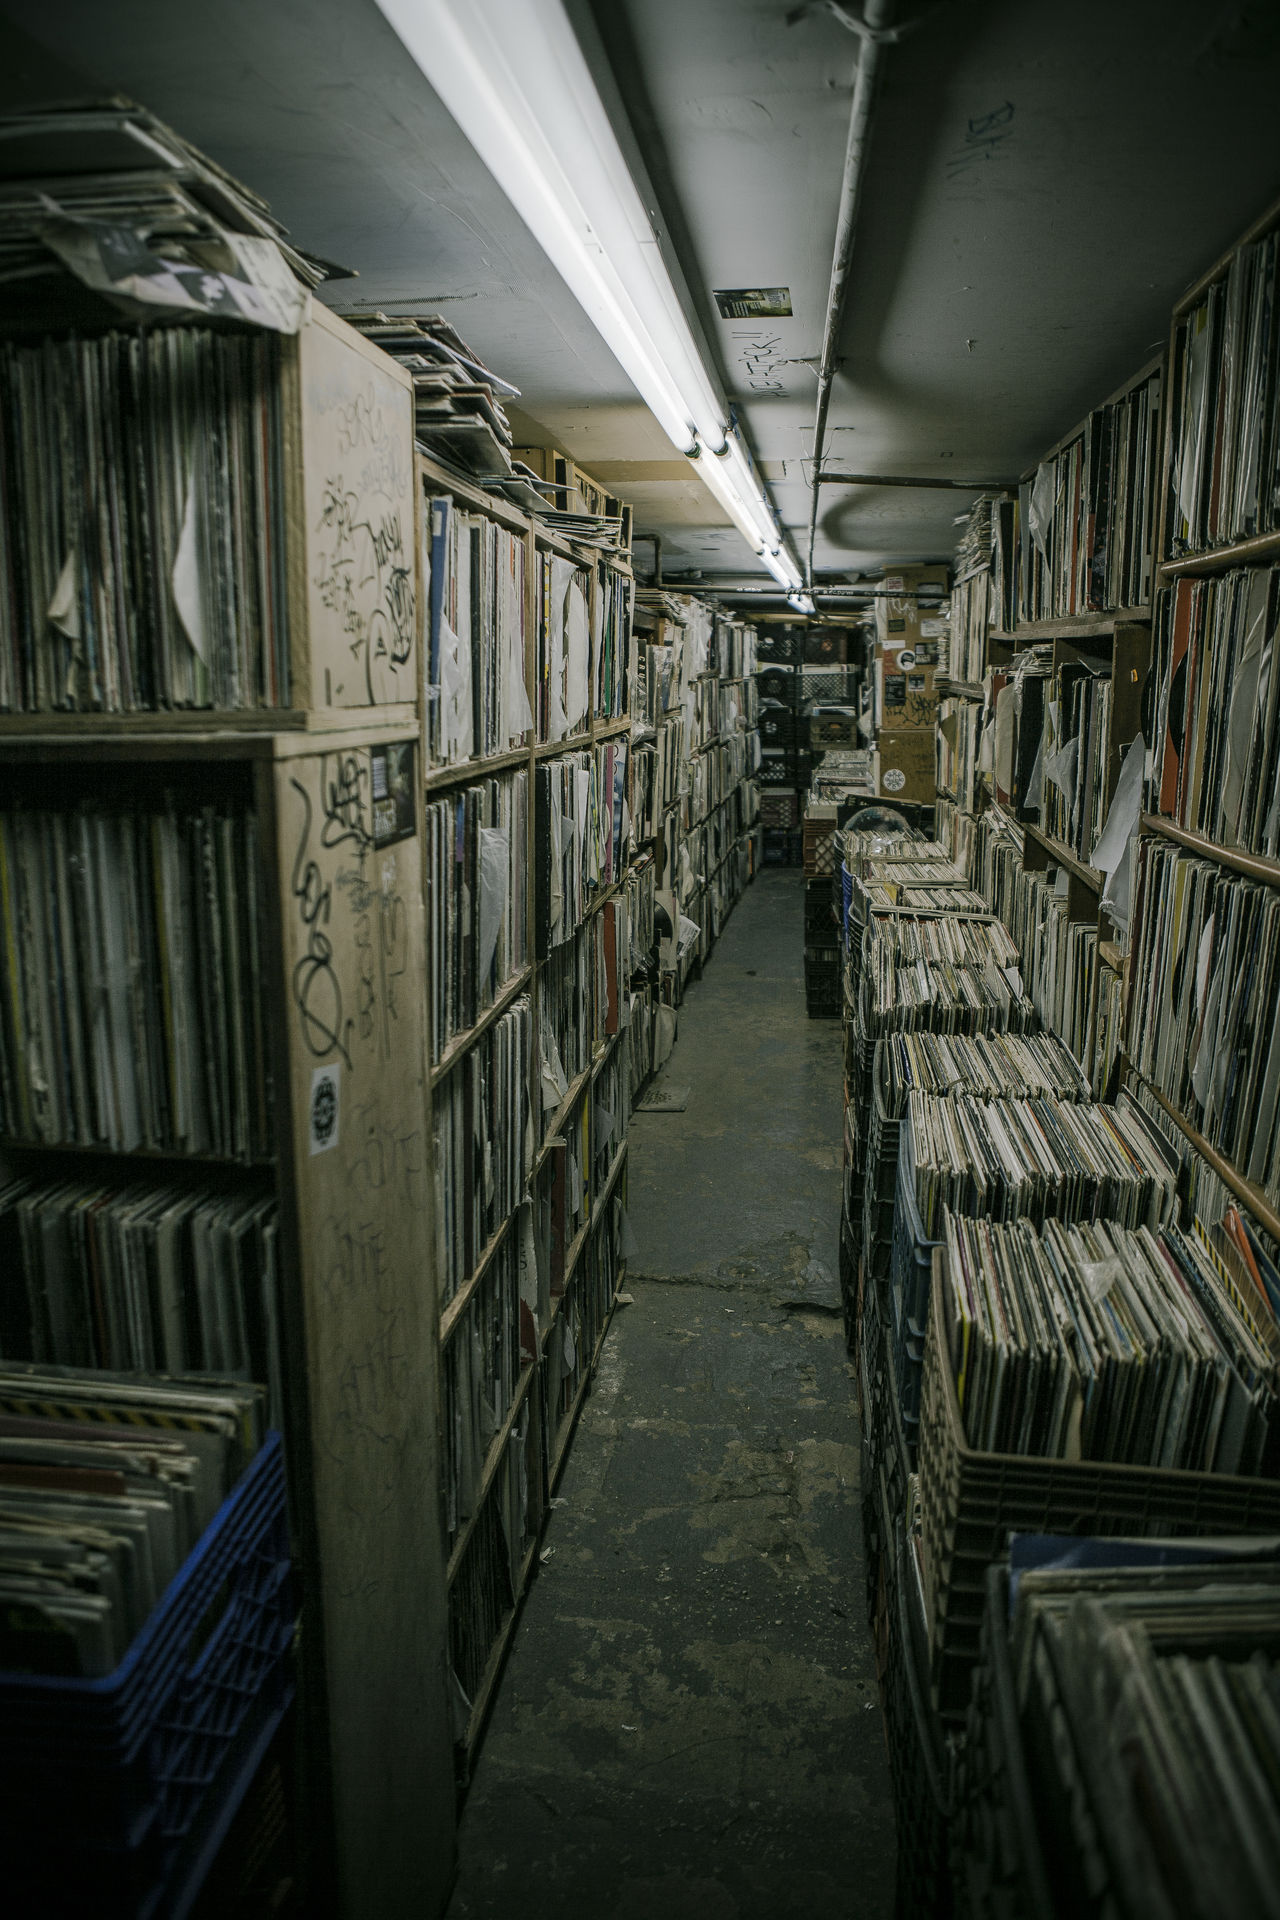 Basement Box Boxes Collection Dark Graffiti Hip Hop HipHop In A Row Indoors  Large Group Of Objects Neon Lights New York City No People NYC Rap Records Recordstore Shelf Urban Vintage Vinyl